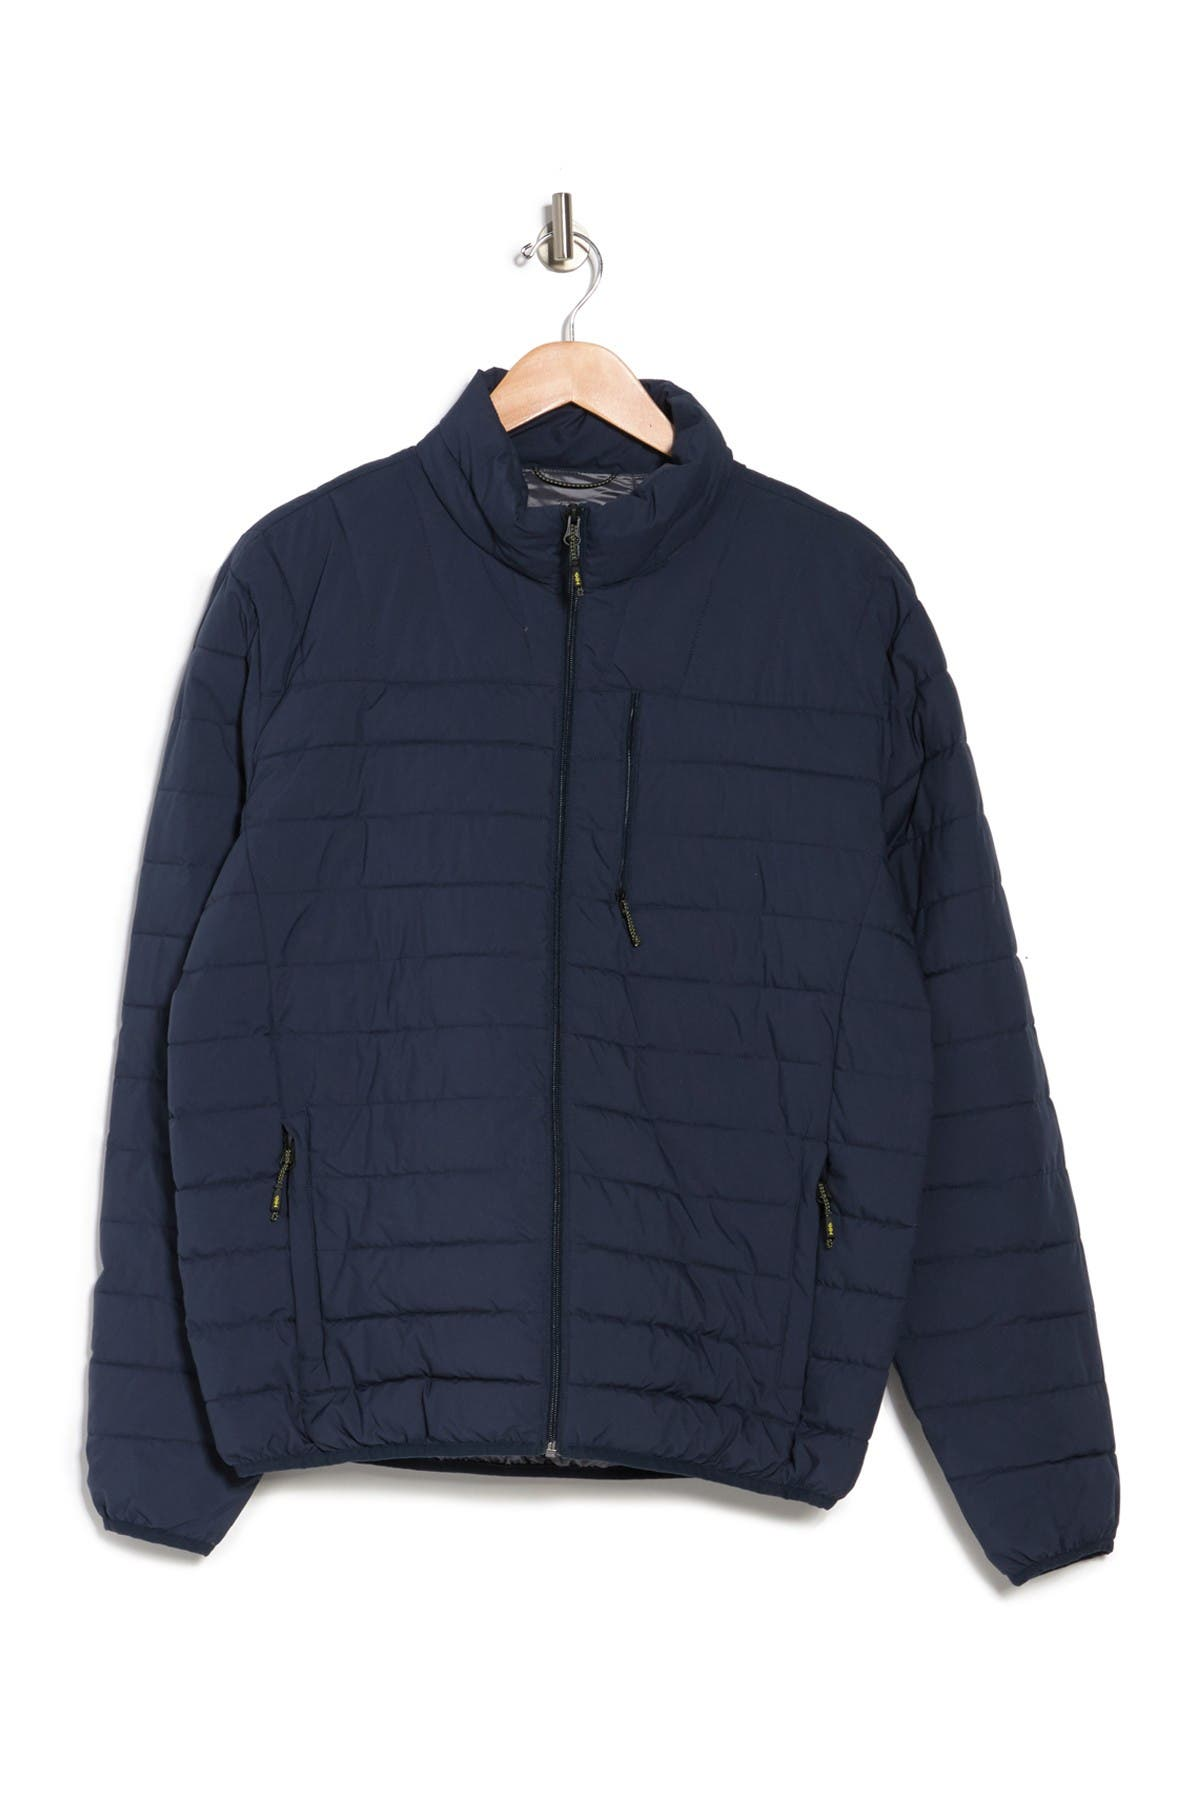 Image of Hawke & Co. Packable Down Stretch Jacket